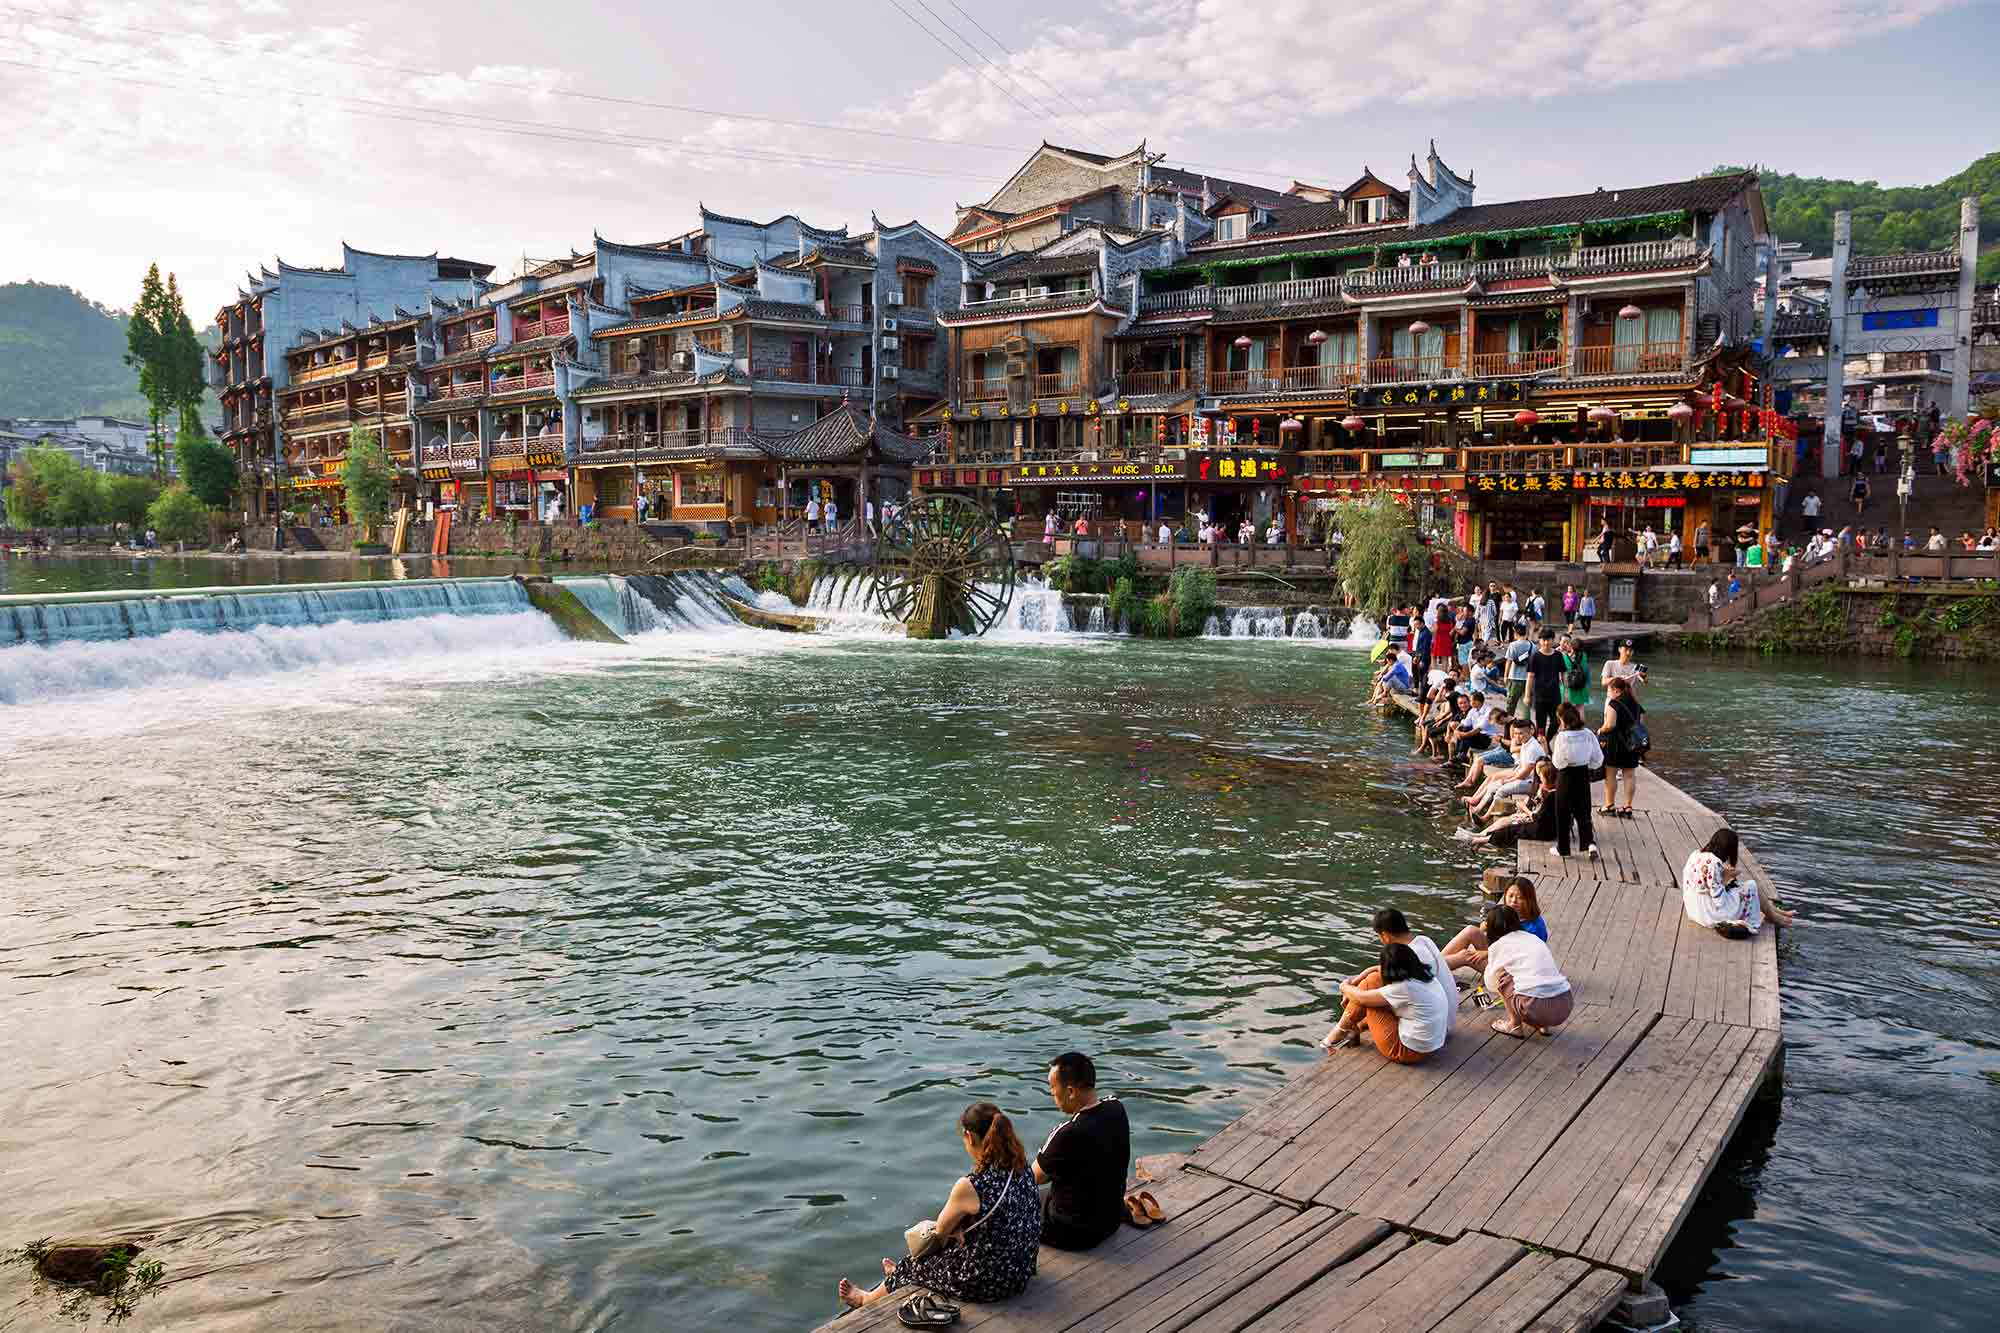 Tuojiang river crossed right through the town of Fenghuang. © ULLI MAIER & NISA MAIER